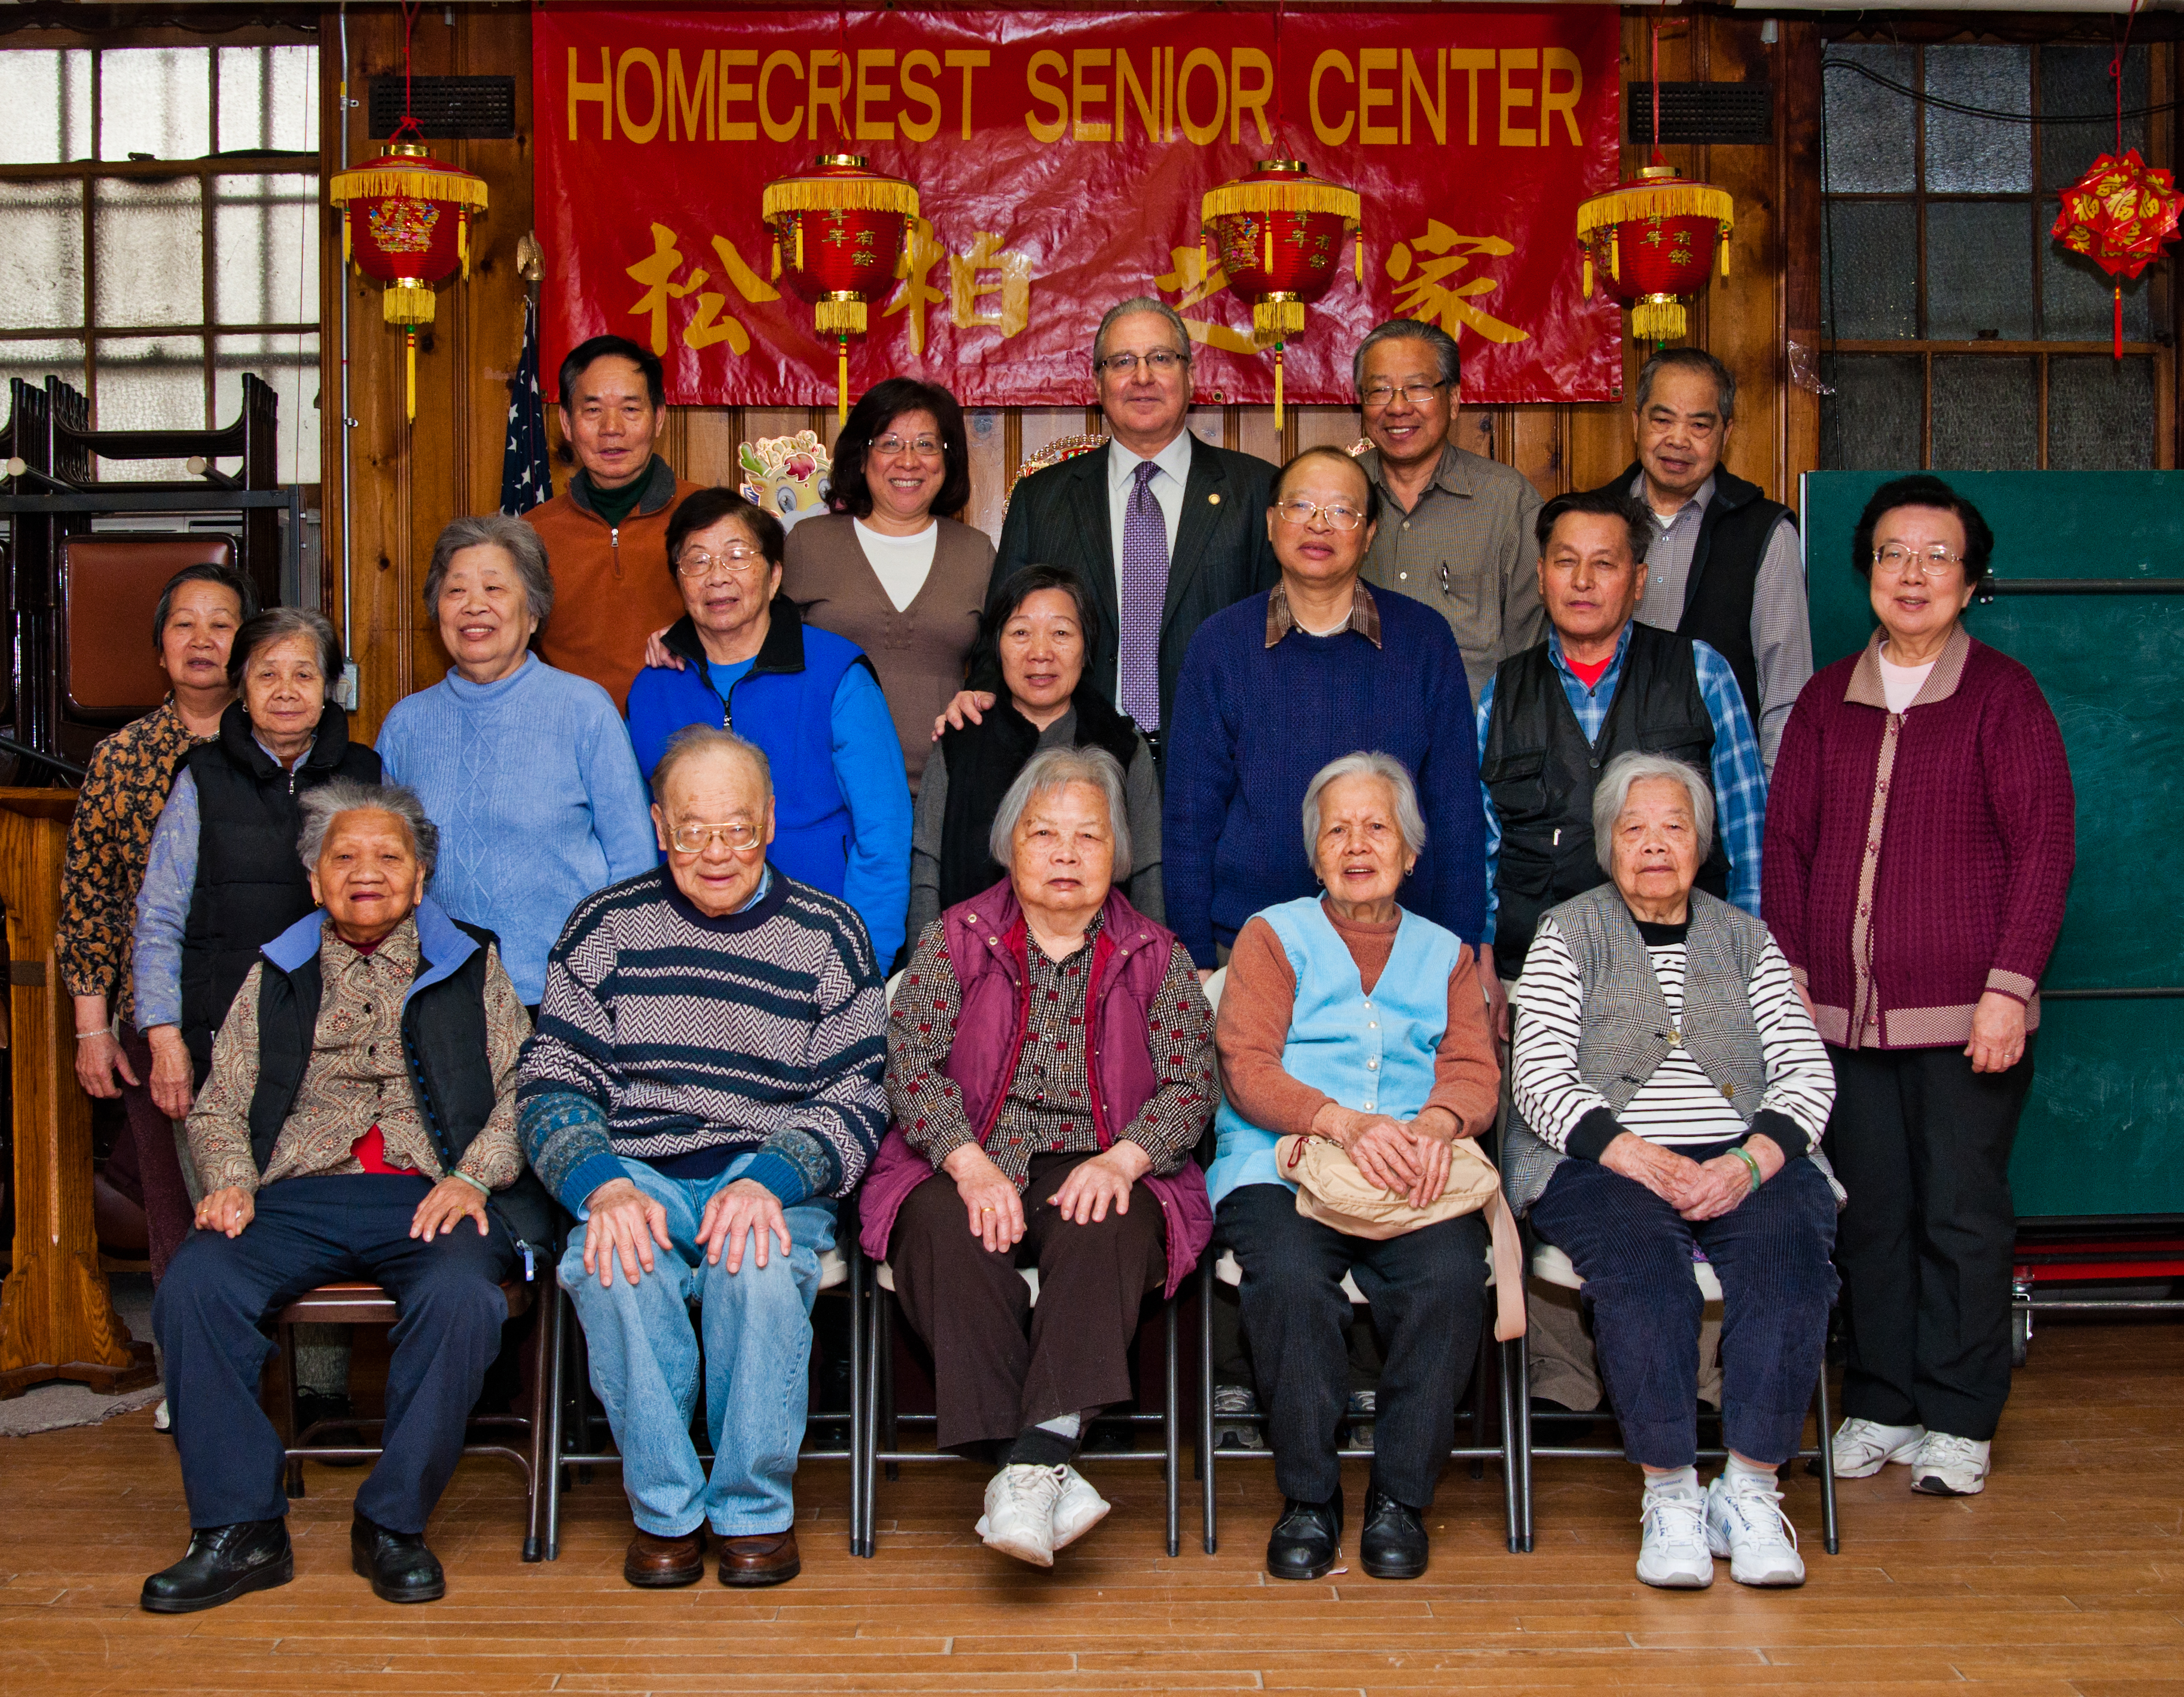 Assemblyman Steven Cymbrowitz pays a visit to seniors celebrating the Chinese New Year at the Homecrest Senior Center.